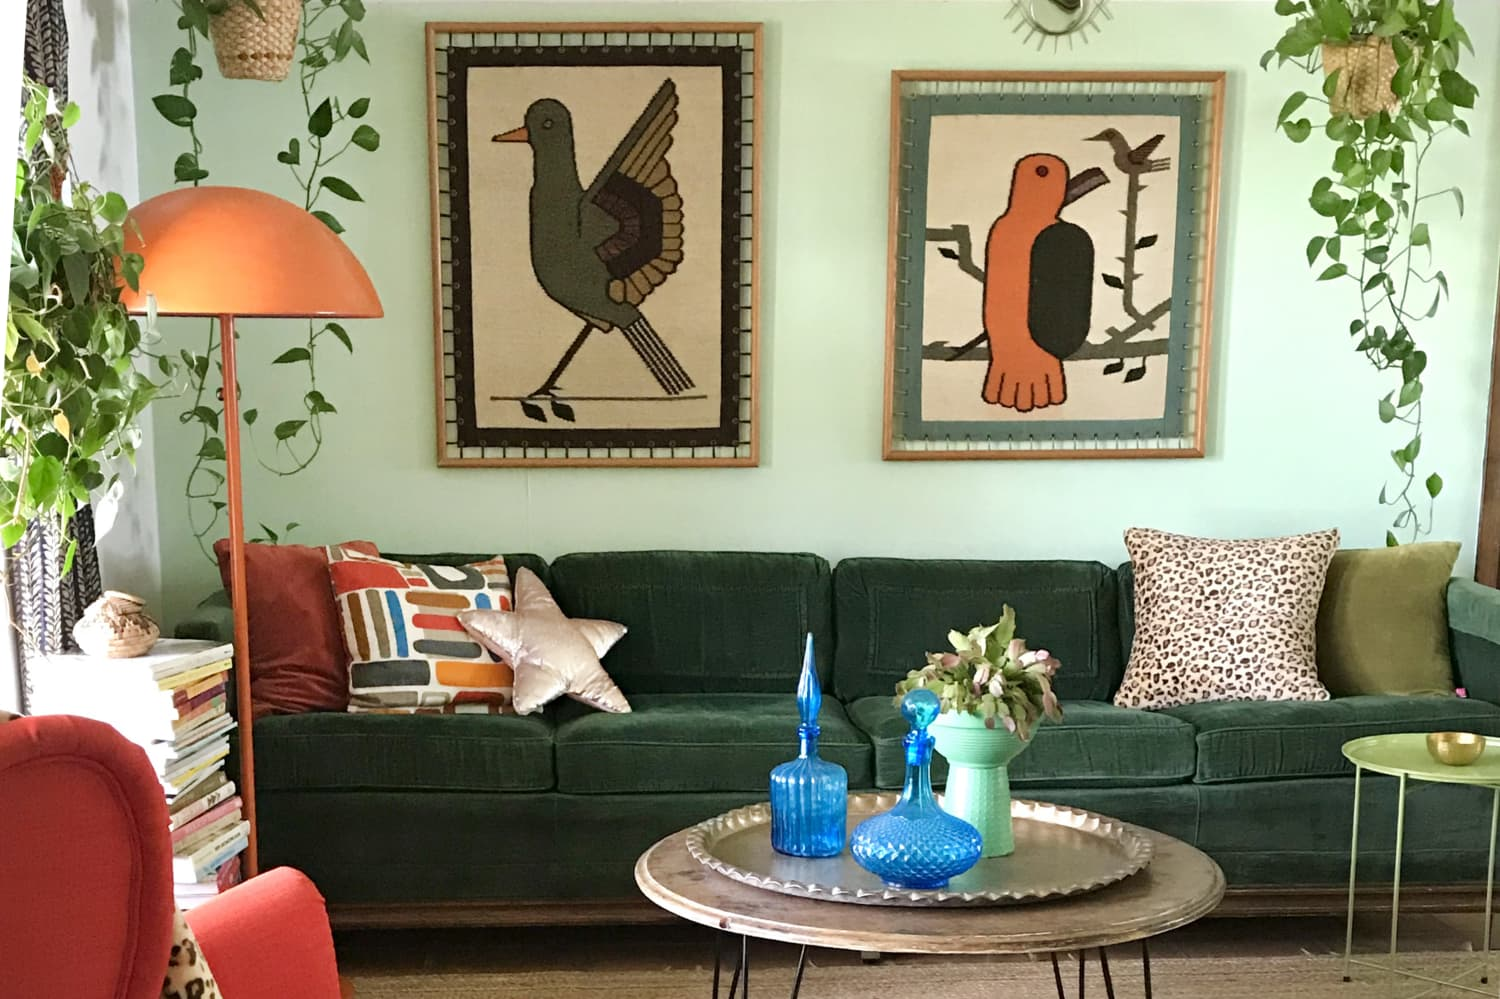 A Florida House Shows How to Create a Colorful Home With Secondhand Finds